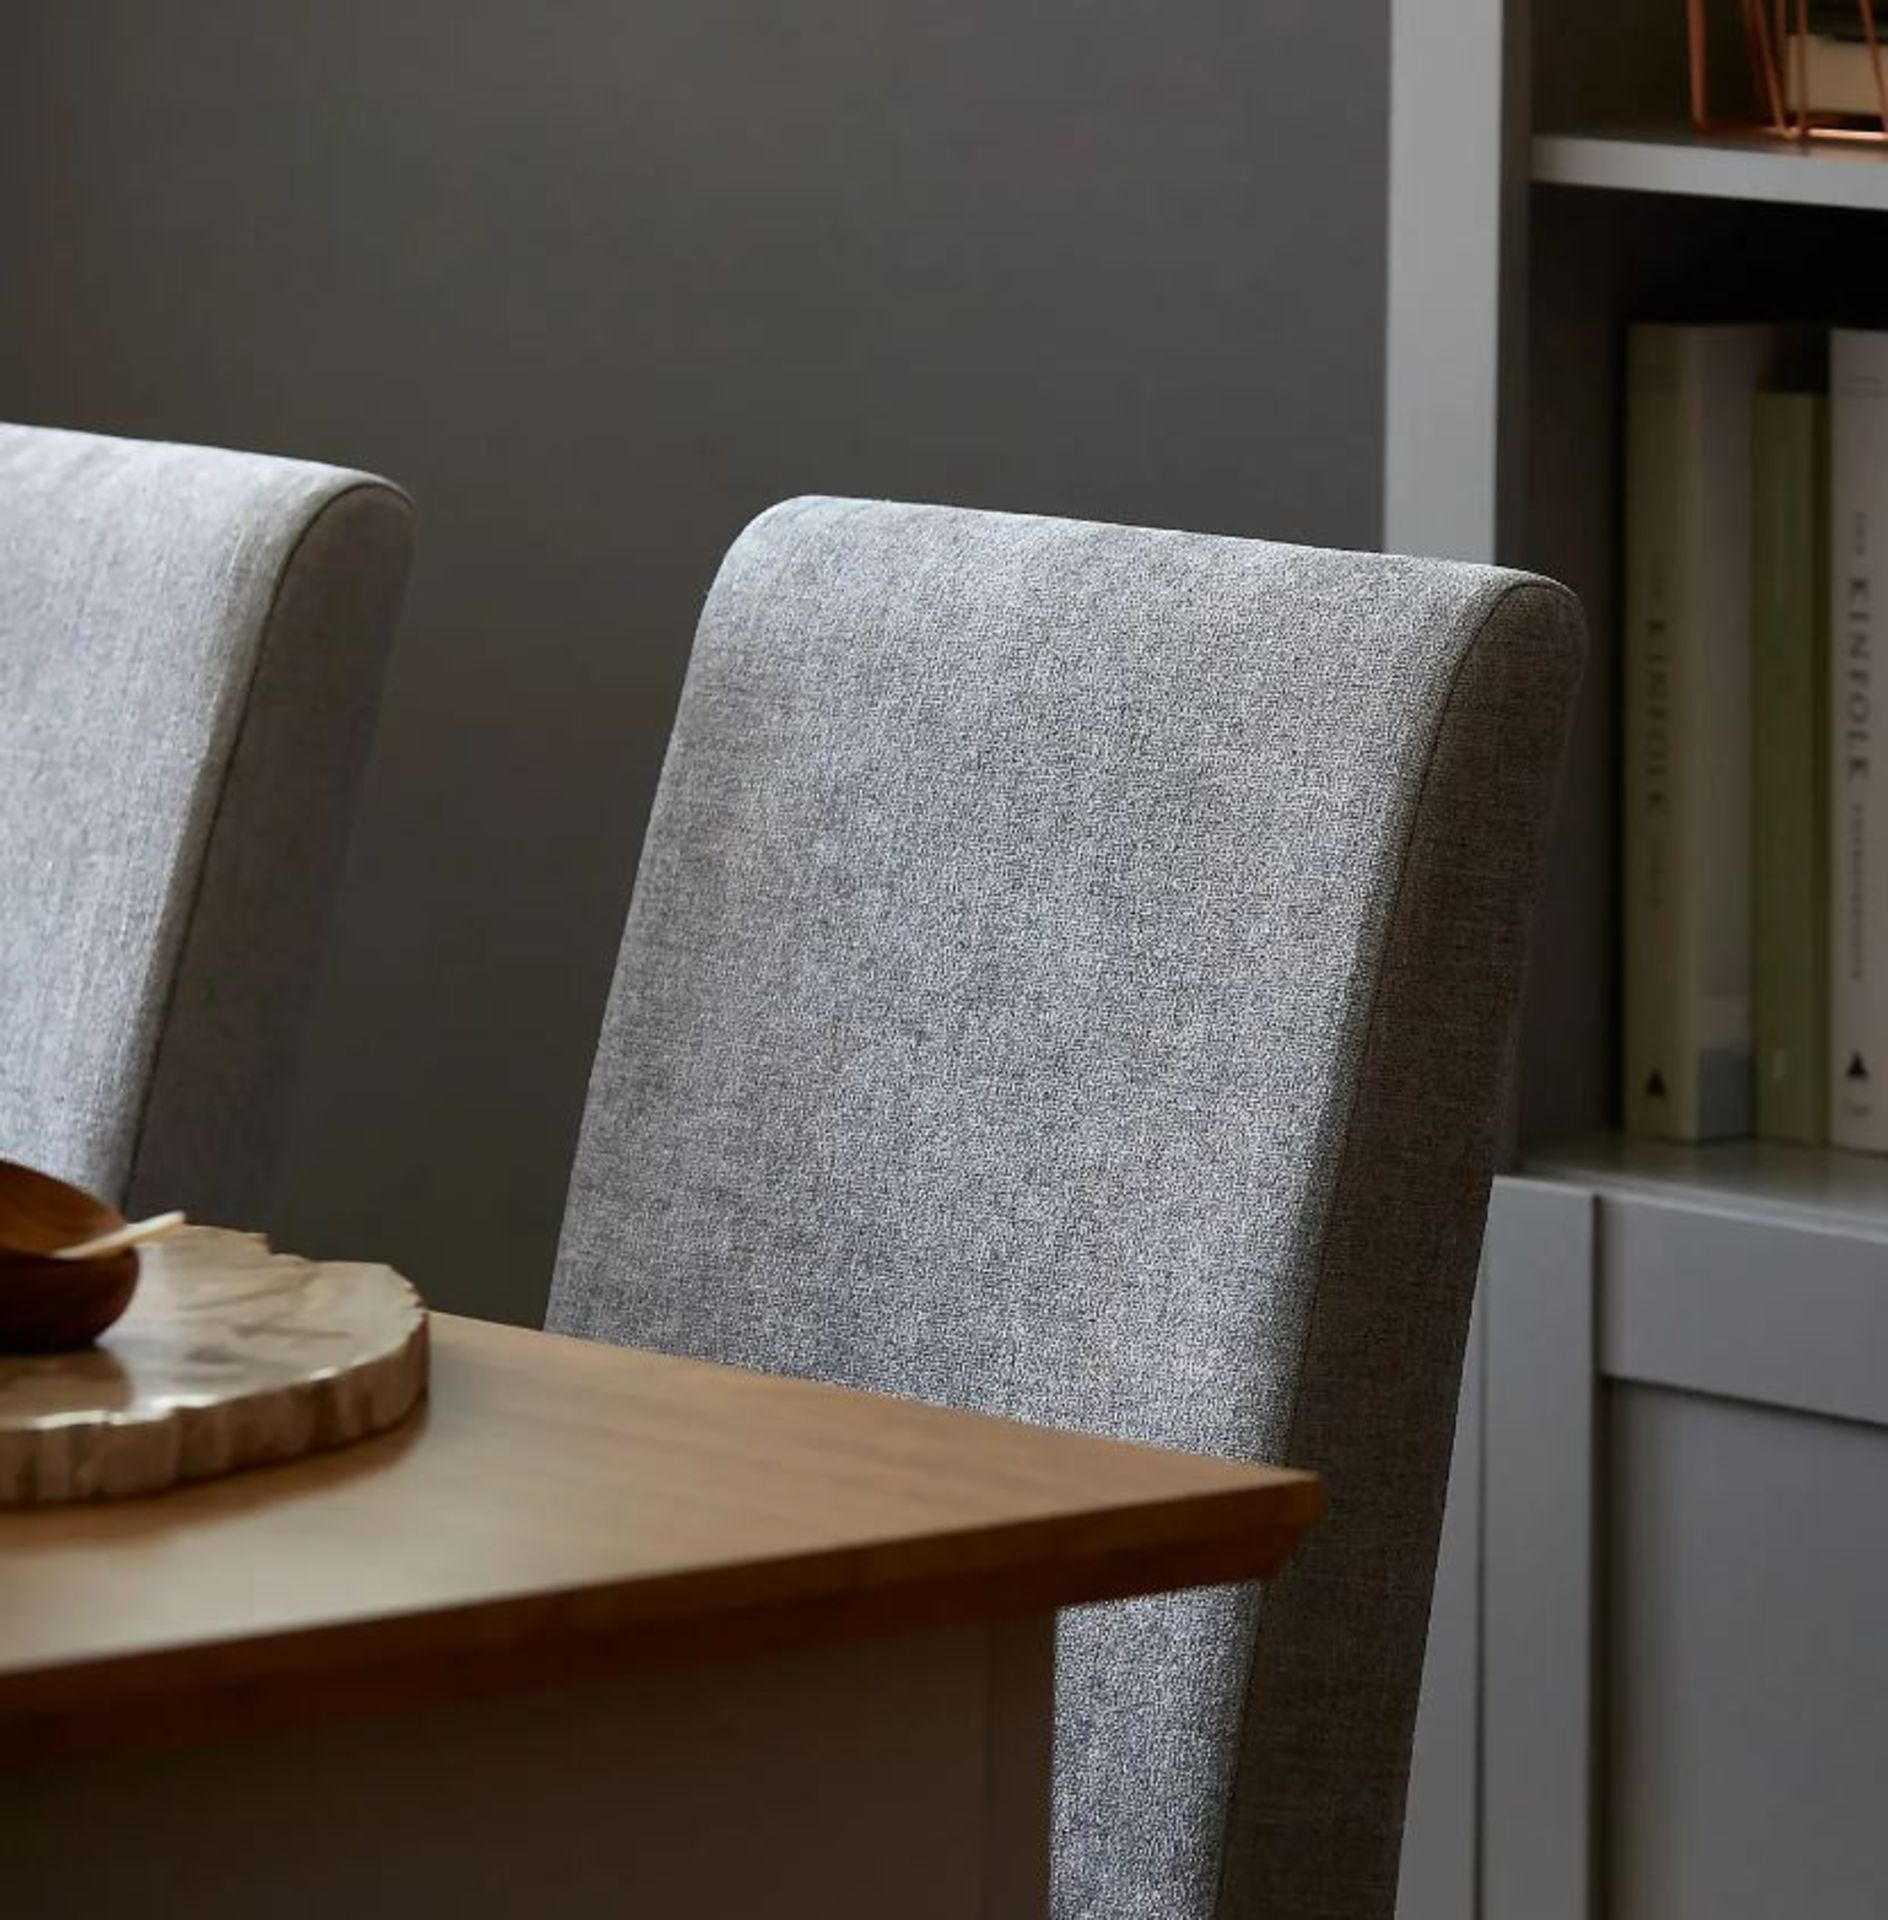 (4P) 1x Diva Dining Chairs. Grey Upholstered Seats. Solid Rubberwood Legs. Unit Complete With Fixing - Image 2 of 3